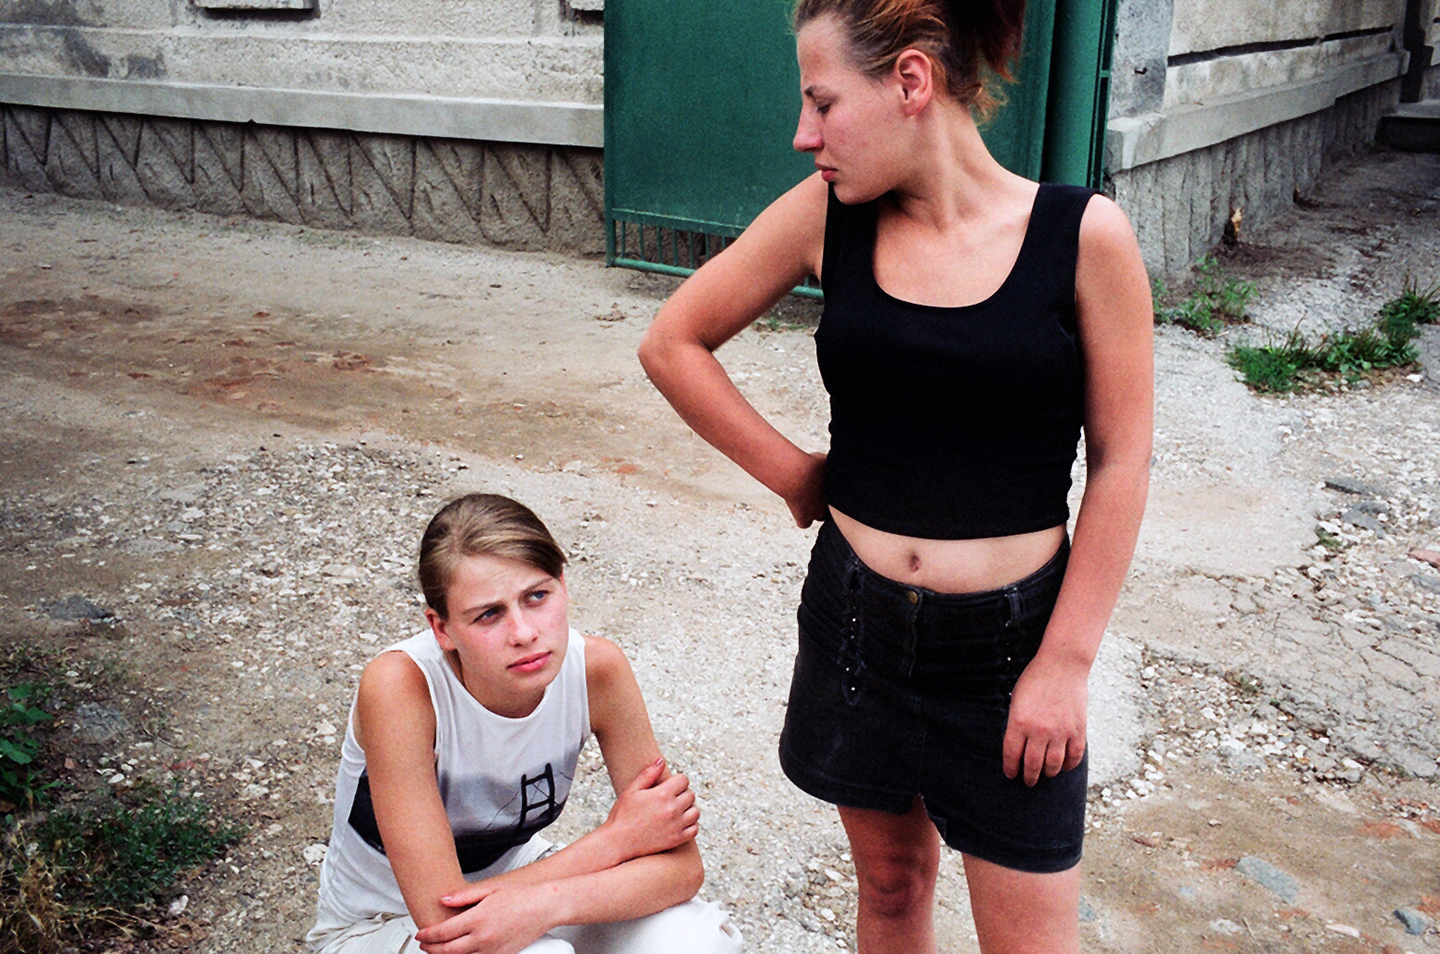 """Trafficked sisters. From """"The Price of Sex"""" reportage."""